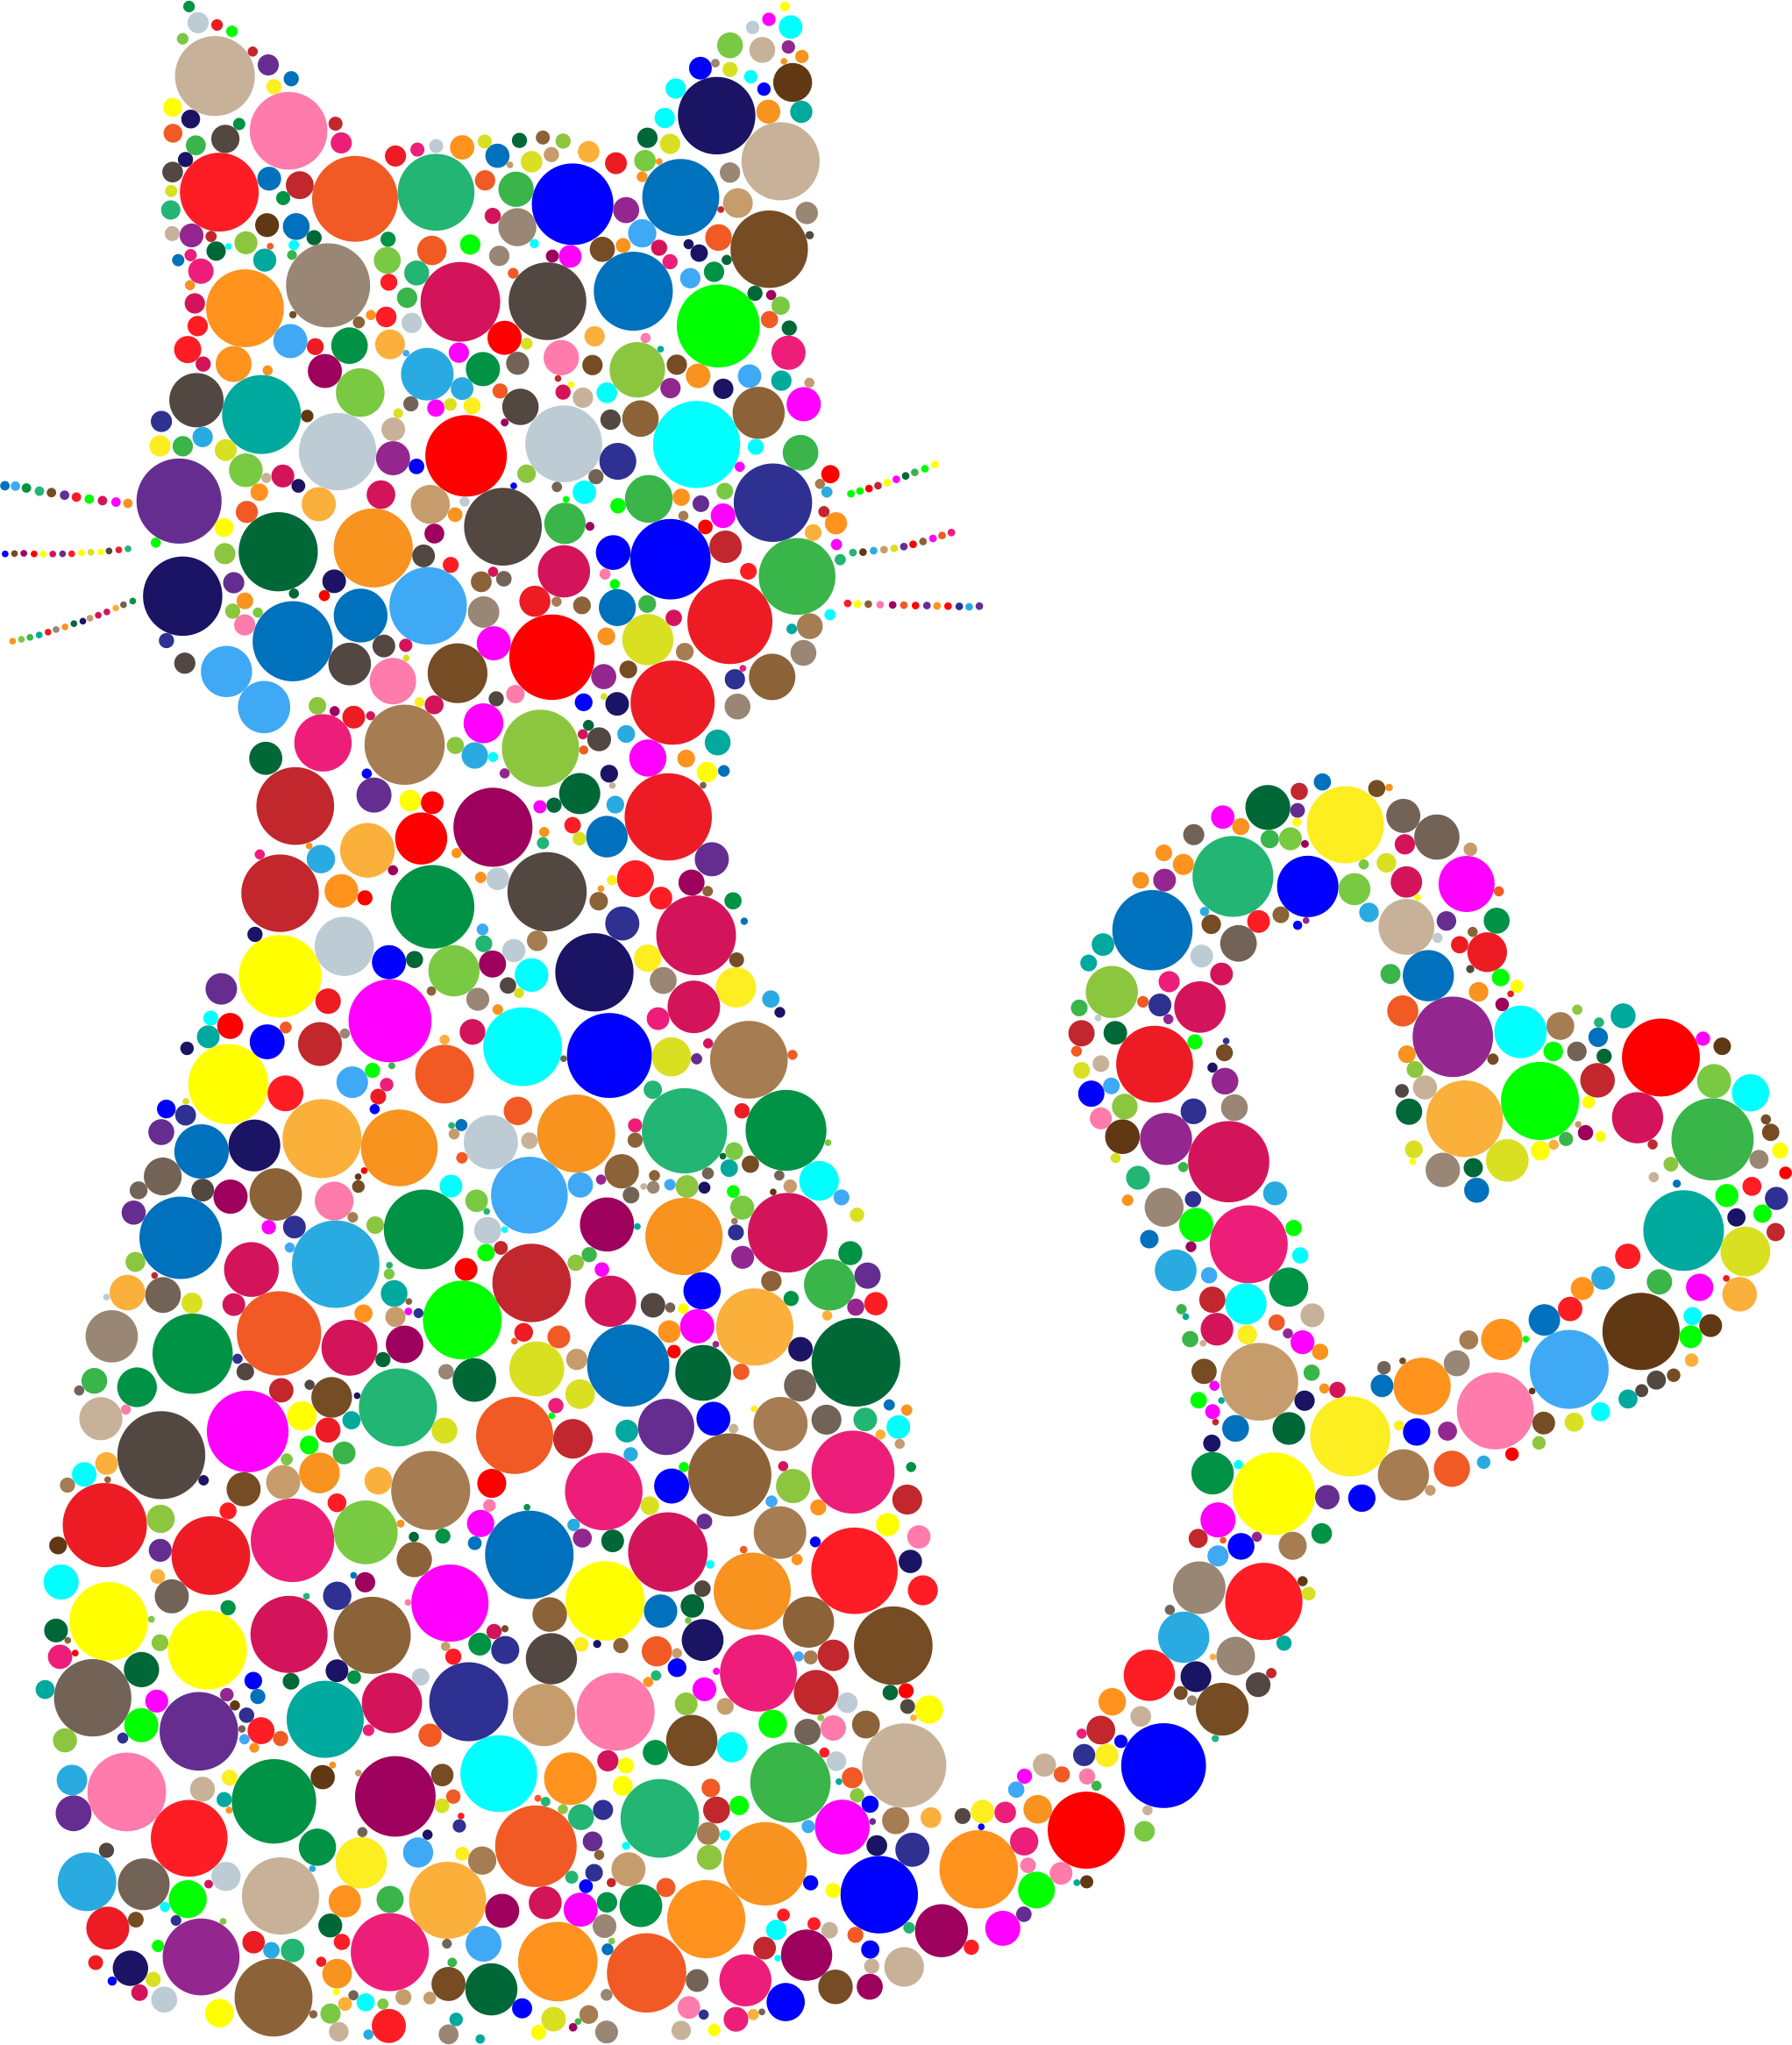 Cat in heart clipart picture transparent download 28+ Collection of Colorful Clipart | High quality, free cliparts ... picture transparent download